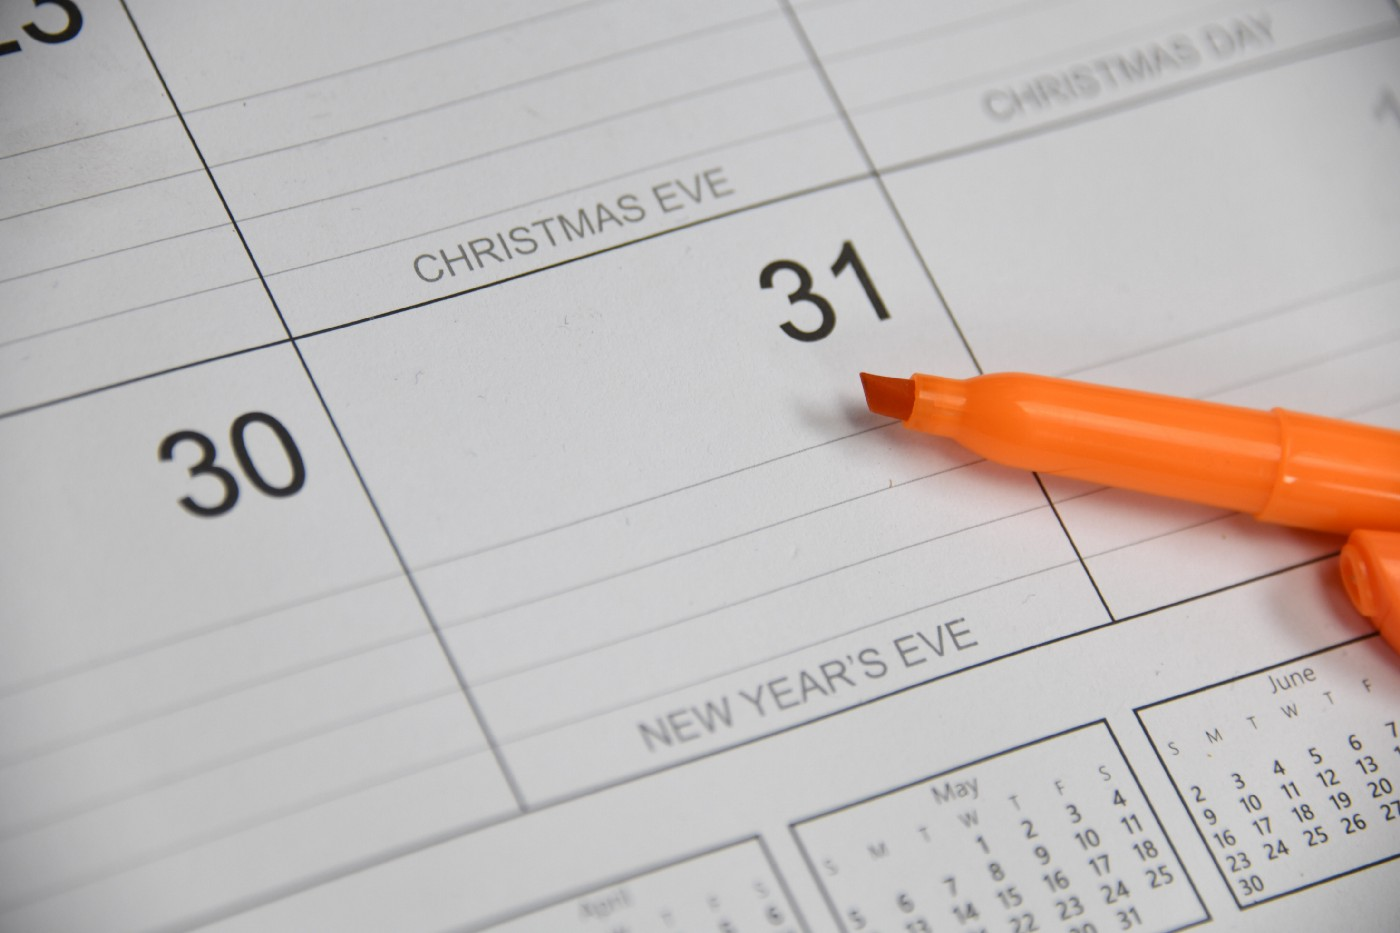 orange highlighter pen pointing at New Year's Eve on a desk calendar